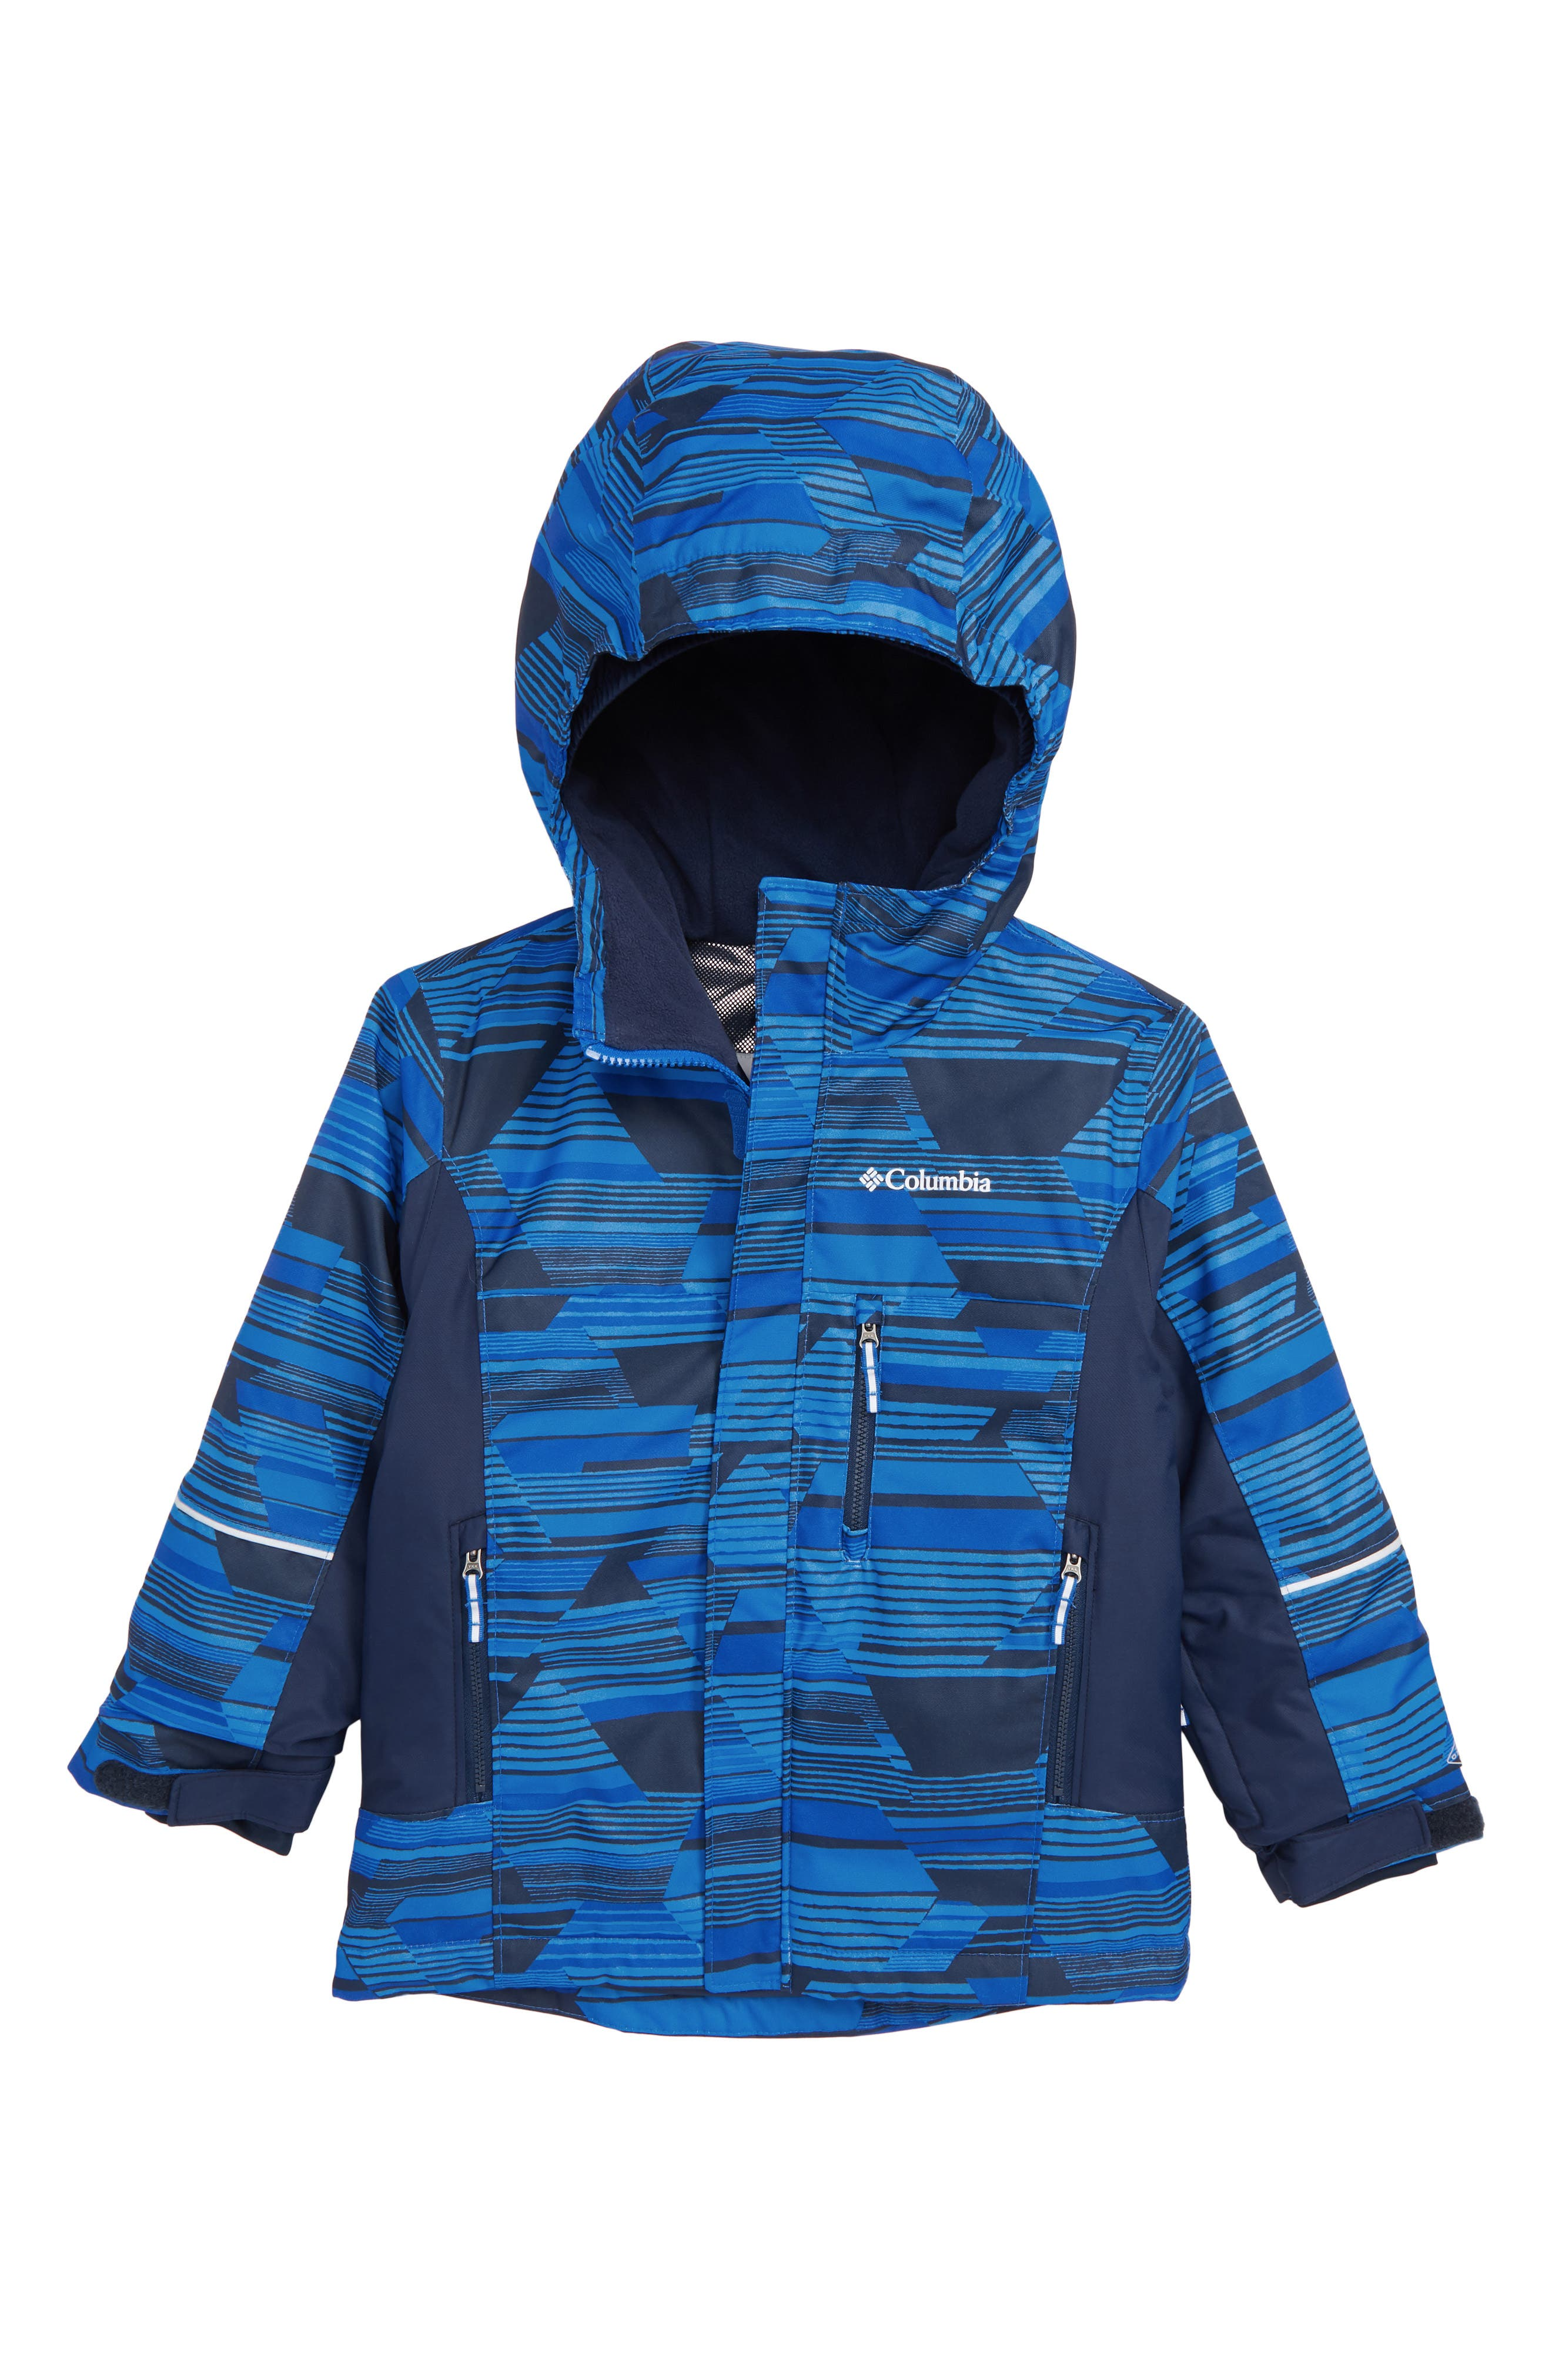 Mighty Mogul<sup>™</sup> Waterproof & Windproof Insulated Jacket,                             Main thumbnail 1, color,                             SUPER BLUE GEO PRINT